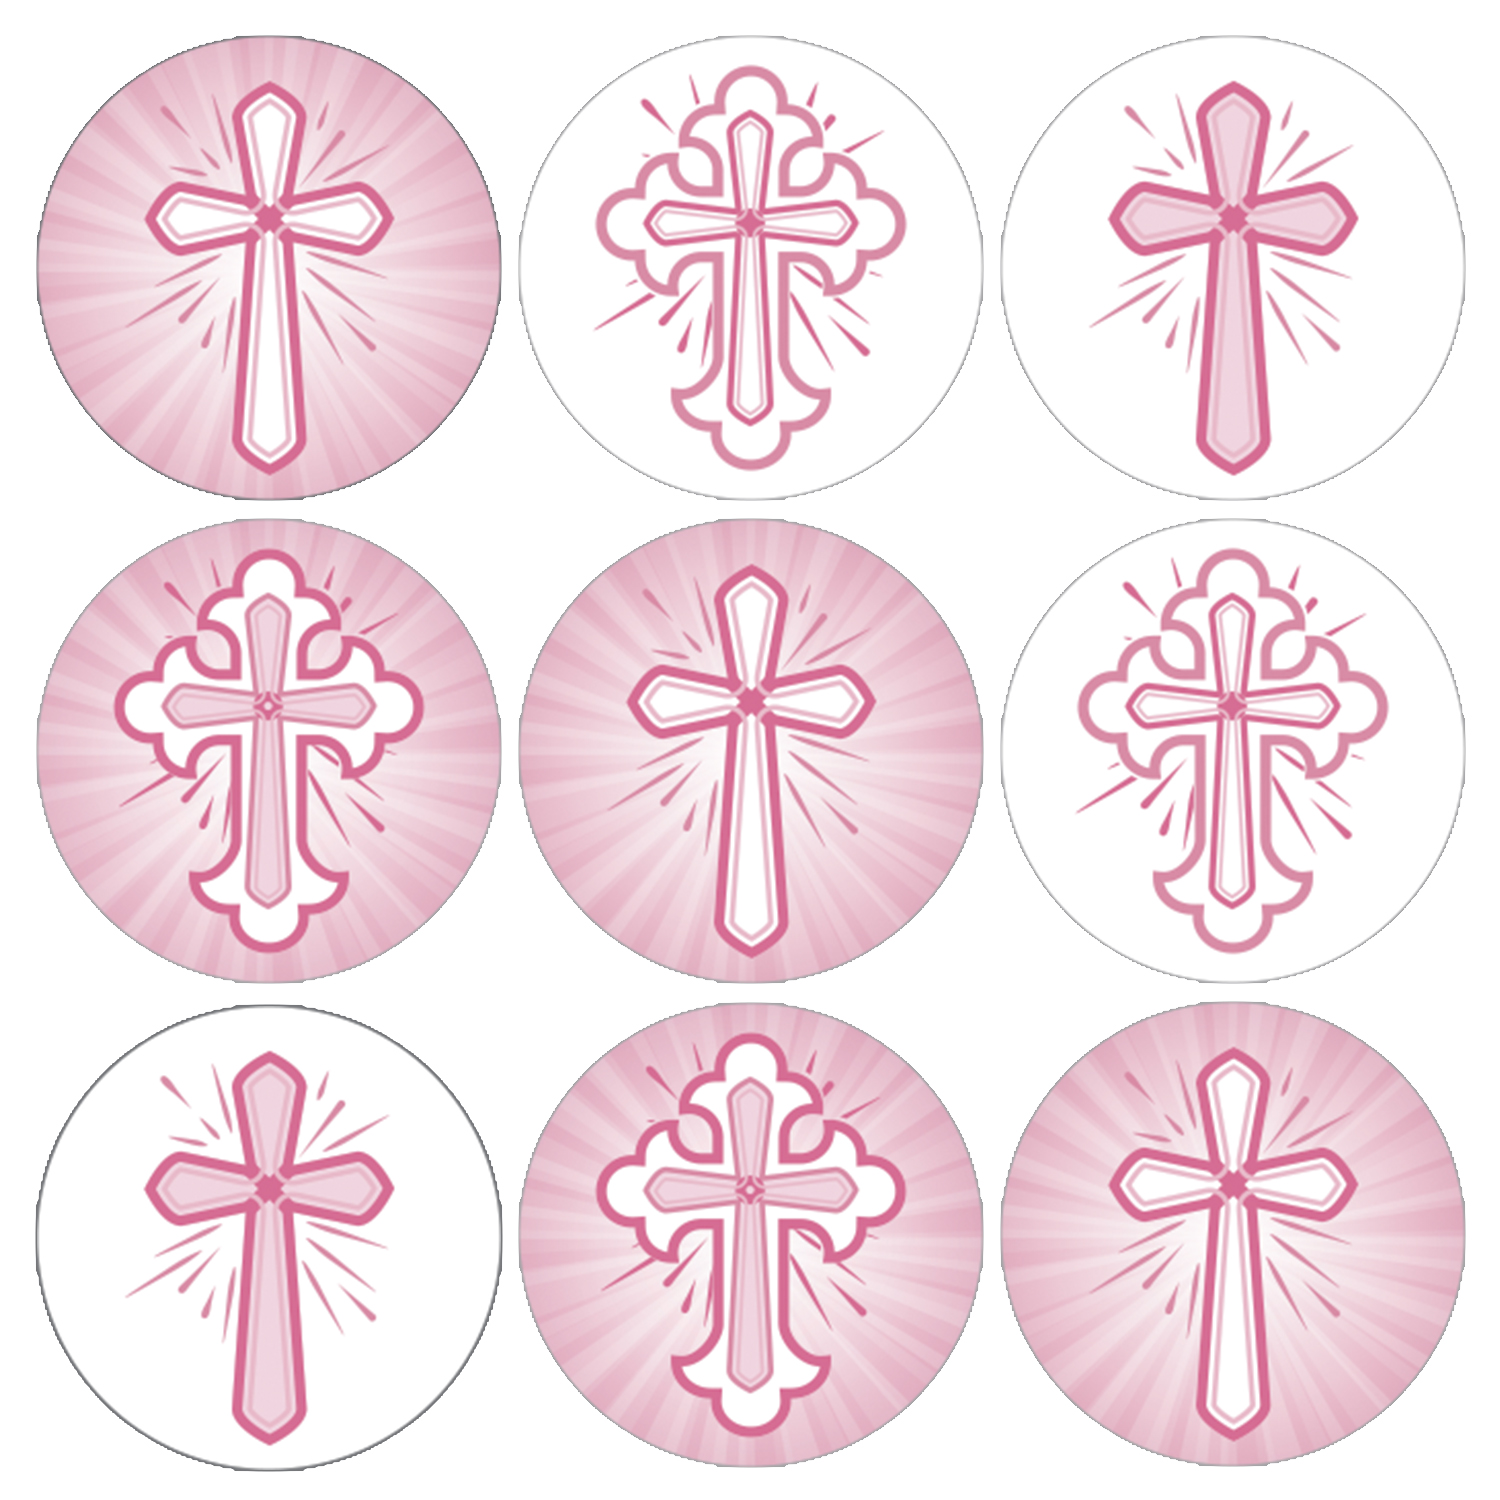 Baby Girl Baptism Favor Stickers - 216ct - Religious Christian Pink Crosses - Christening First Communion Decorations Party Supplies - Set of 216 Stickers